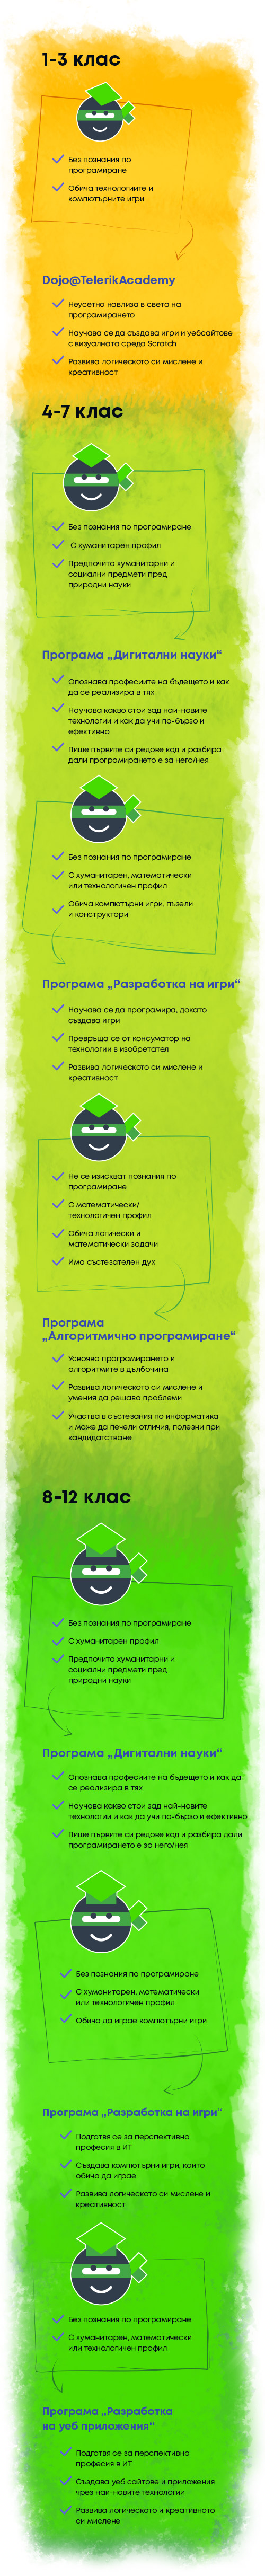 For_Parents_Graphic_Mobile